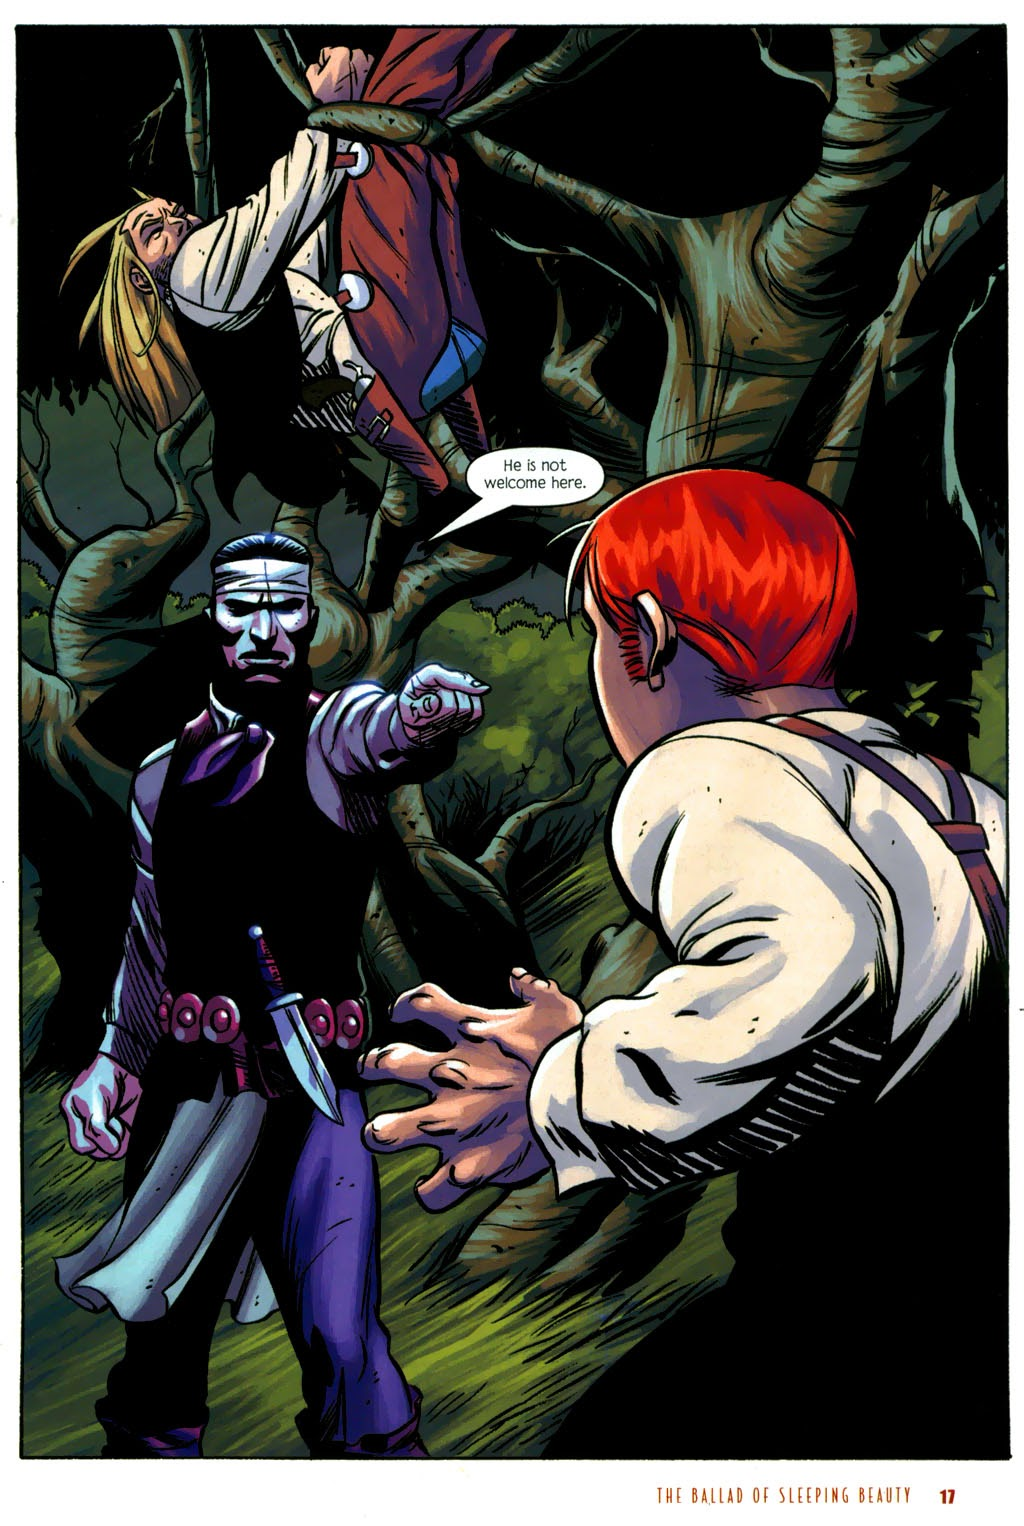 Read online The Ballad of Sleeping Beauty comic -  Issue #6 - 19